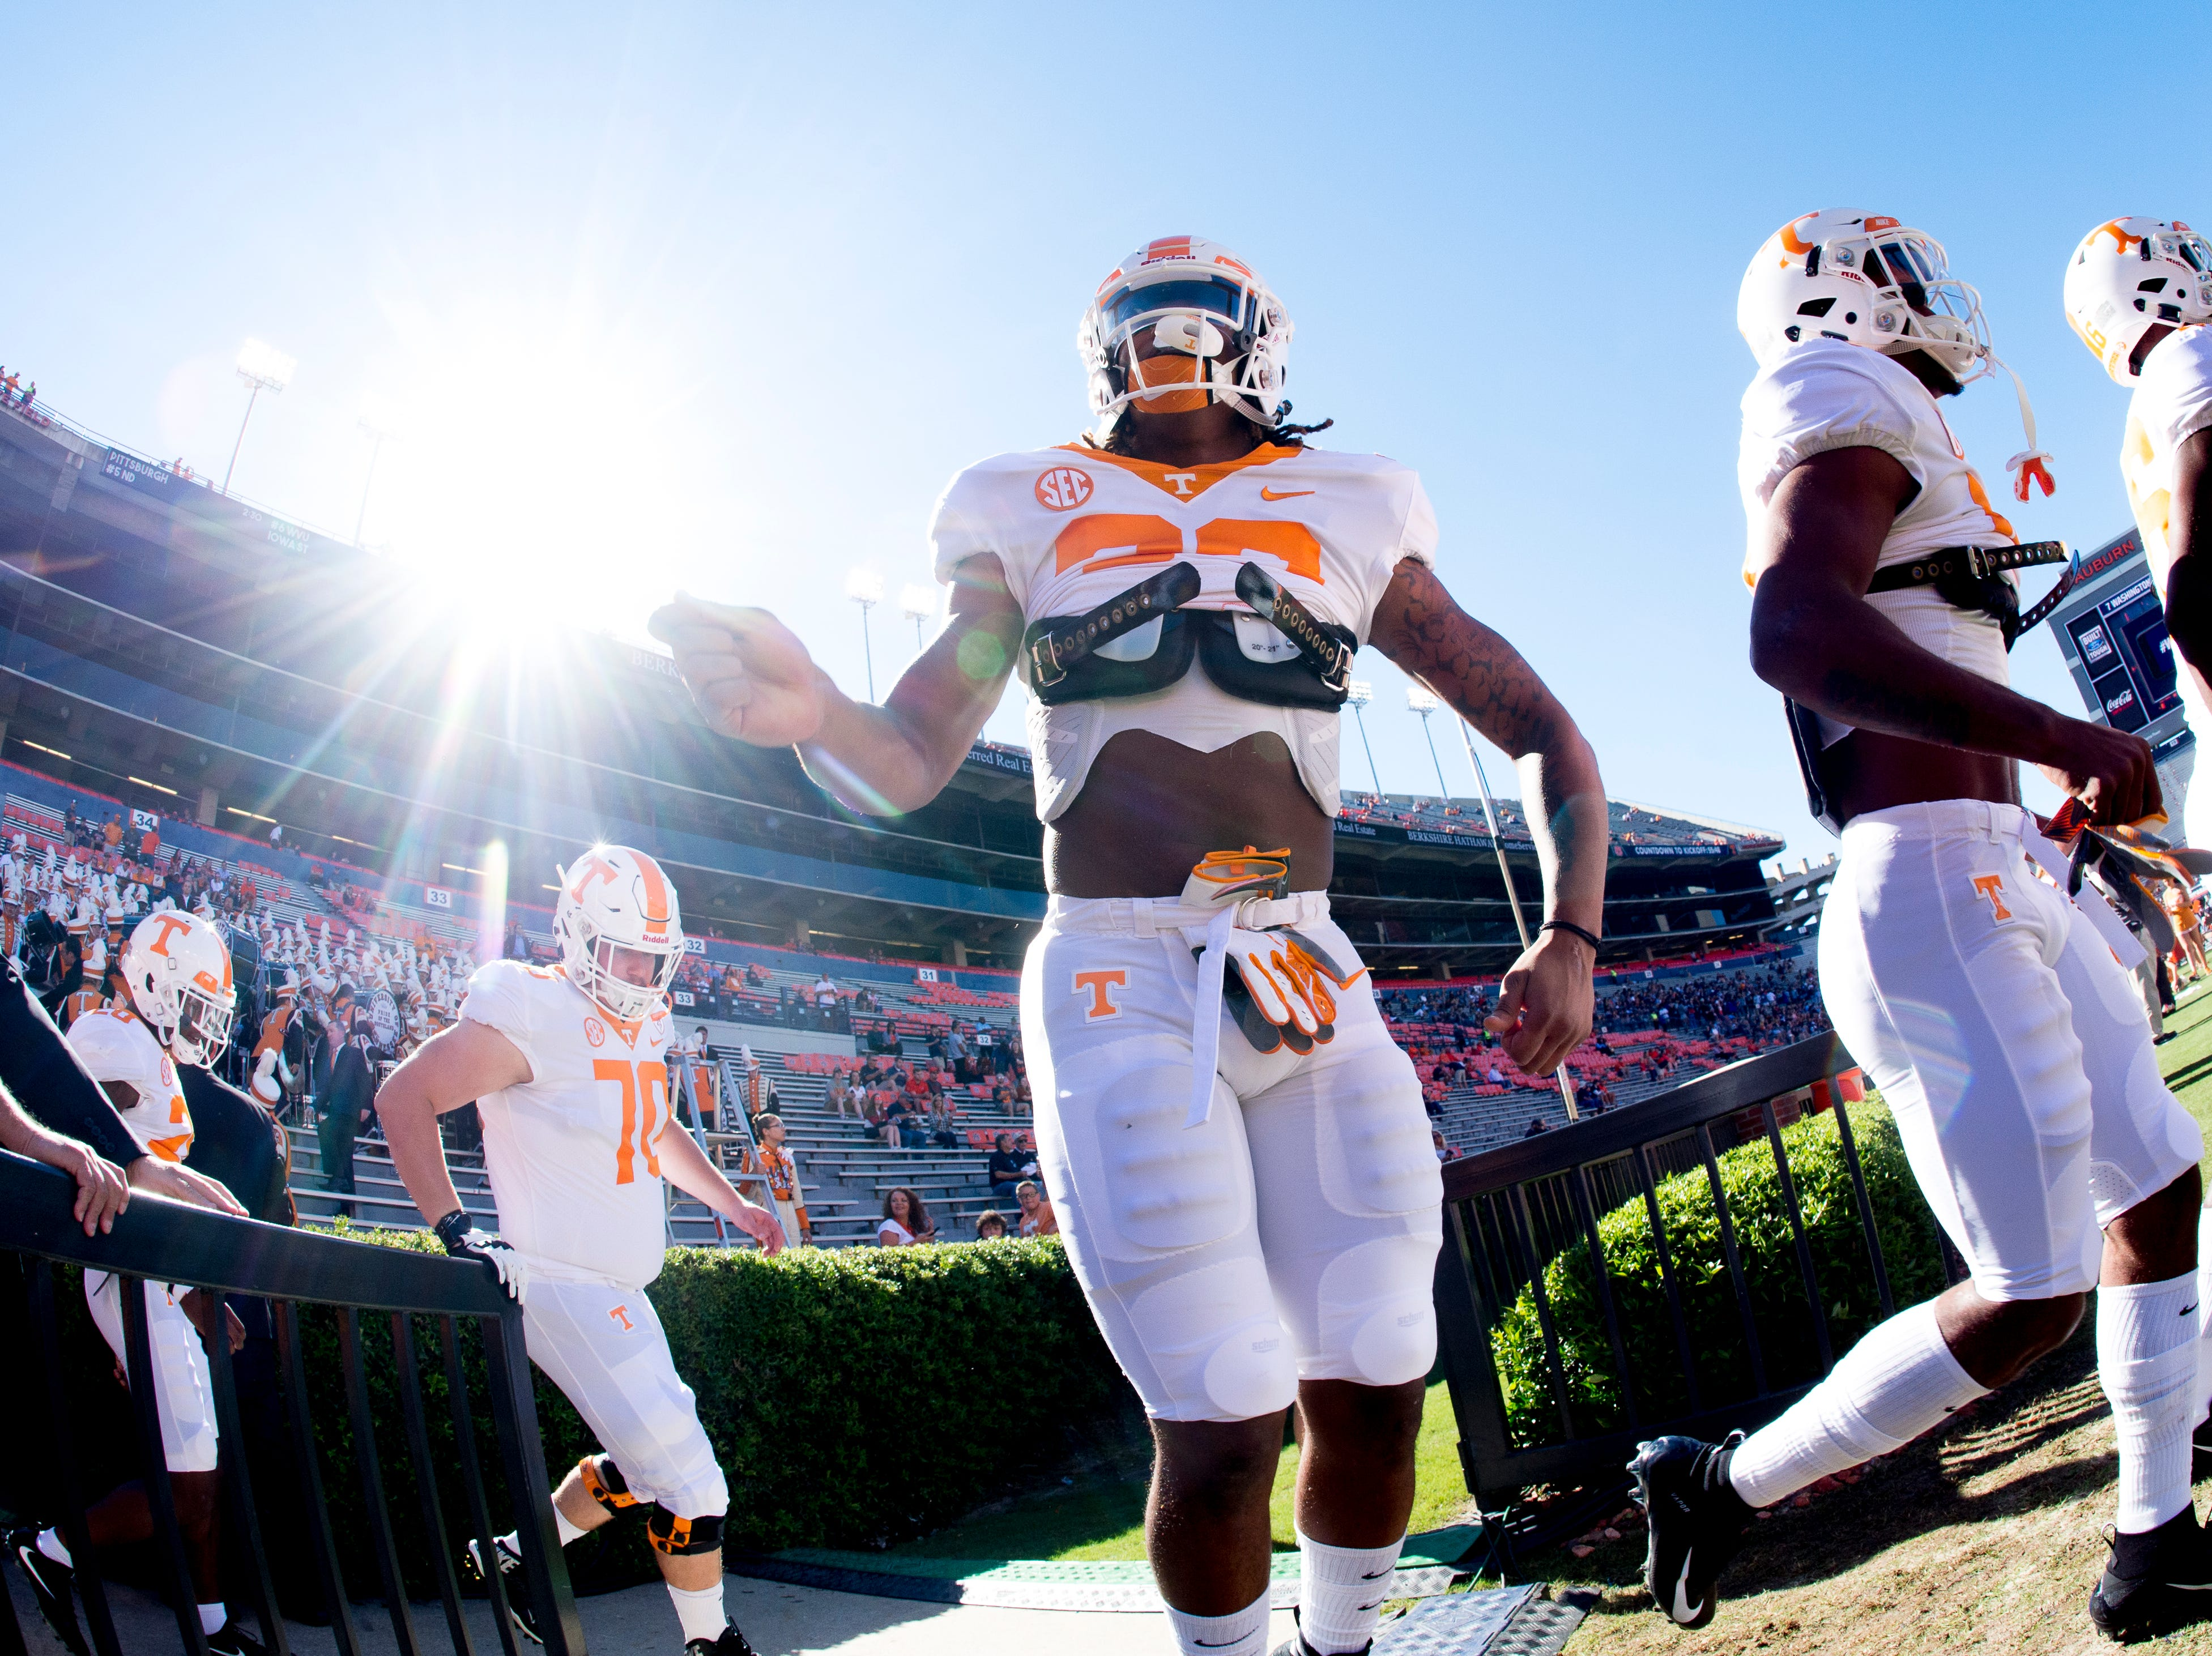 Tennessee running back Jeremy Banks (33) runs onto the field during a game between Tennessee and Auburn at Jordan-Hare Stadium in Auburn, Alabama on Saturday, October 13, 2018.